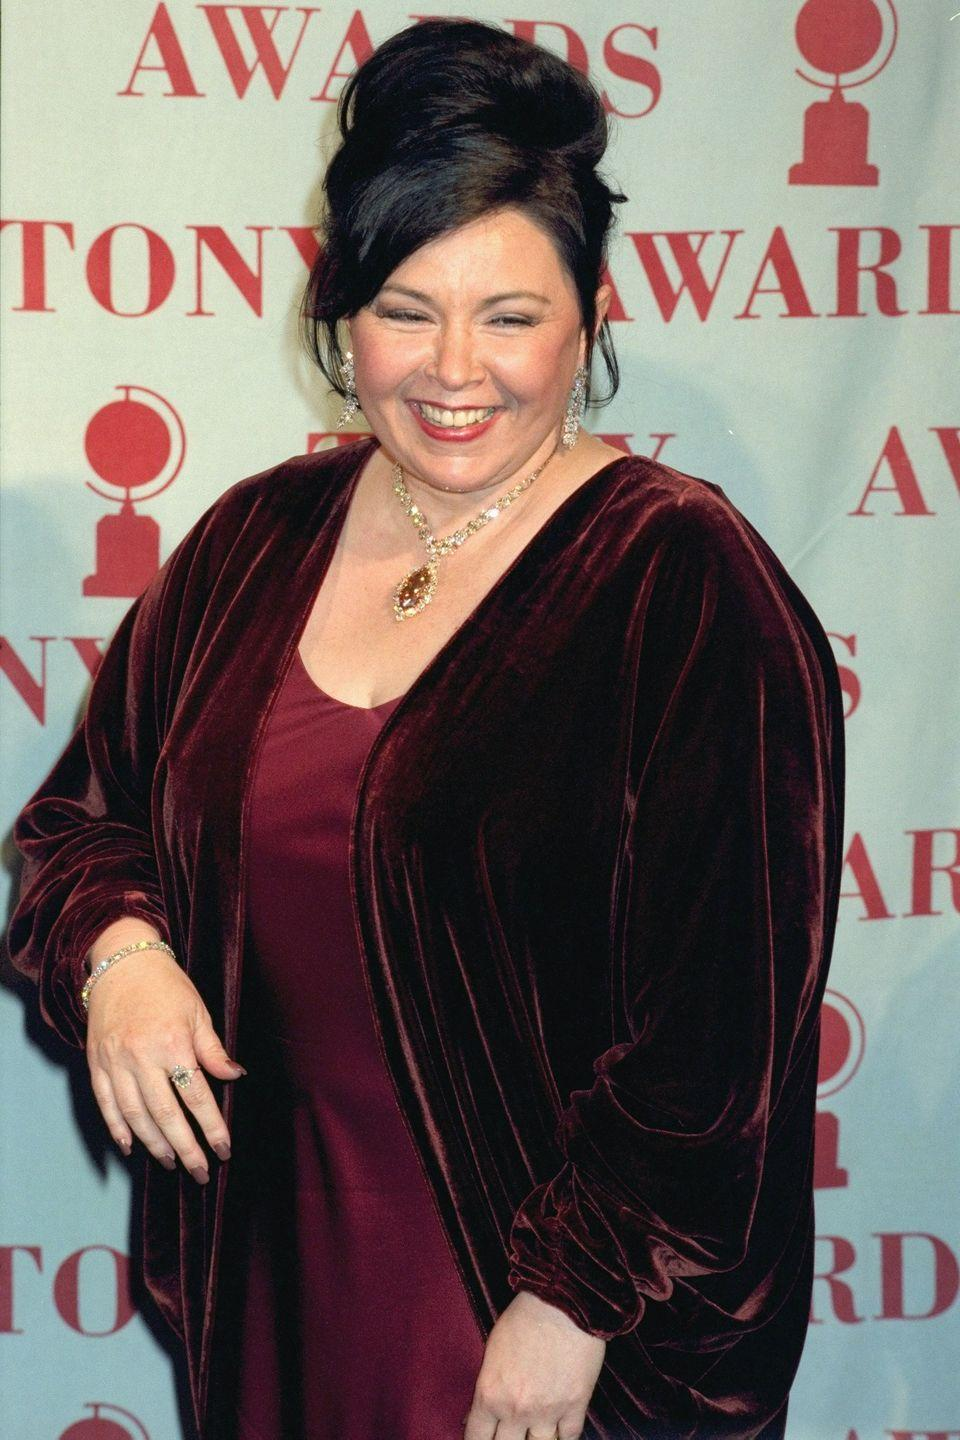 """<p>The sitcom star has always been honest about her weight through the years, including that she got gastric bypass surgery in 1998 after reaching <a href=""""https://people.com/bodies/10-celebrities-who-were-honest-about-having-weight-loss-surgery/?slide=5864524#5864524"""" rel=""""nofollow noopener"""" target=""""_blank"""" data-ylk=""""slk:350 pounds"""" class=""""link rapid-noclick-resp"""">350 pounds</a>.</p>"""